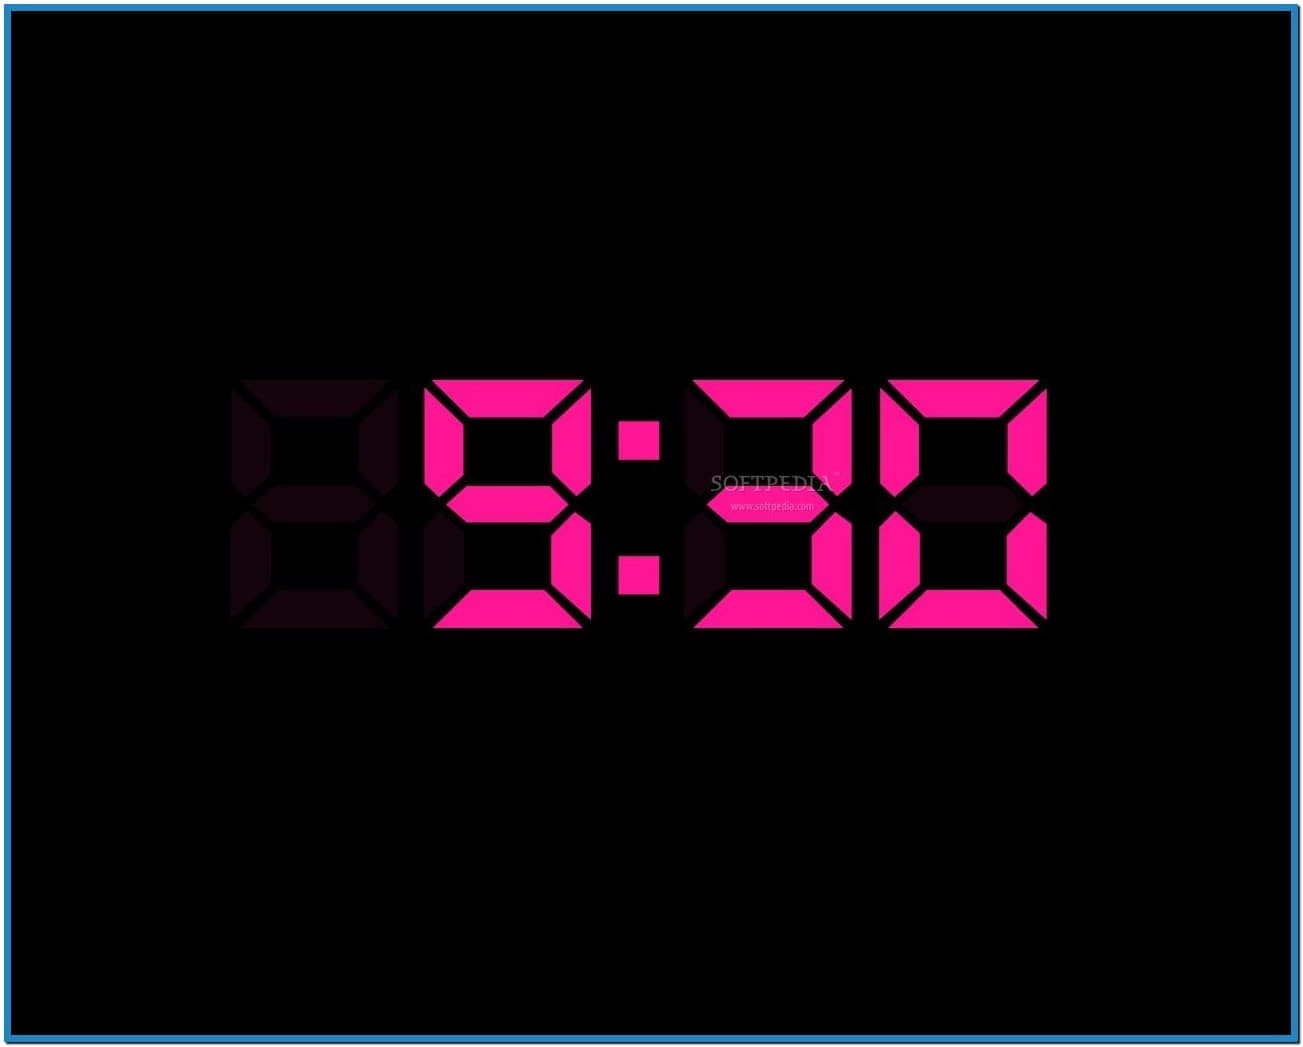 Animated Digital Clock Wallpaper Wallpapersafari